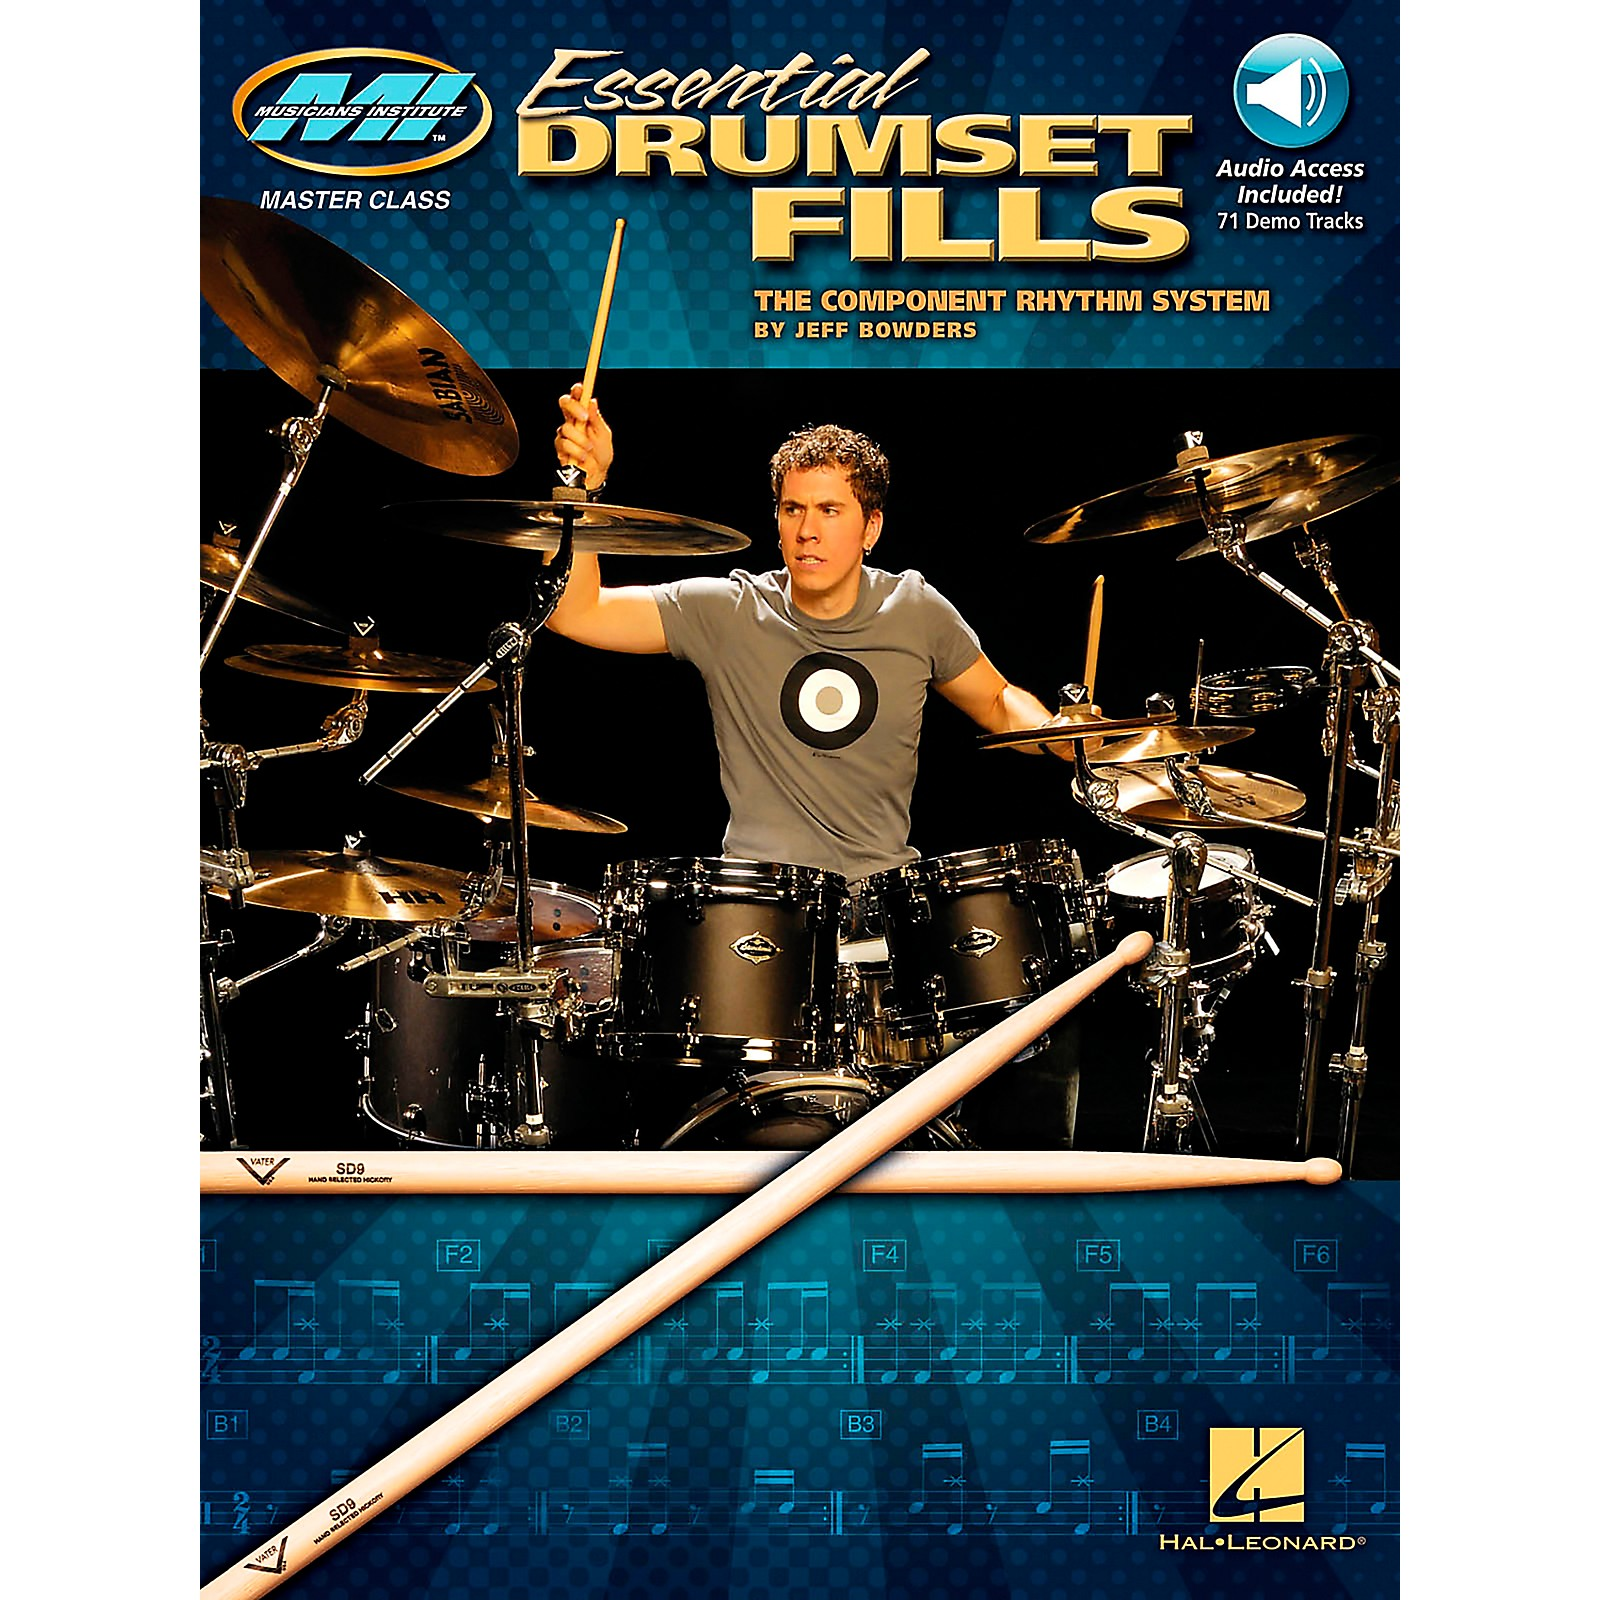 Hal Leonard Musician's Institute's Essential Drumset Fills: The Component Rhythm System (Book/CD)